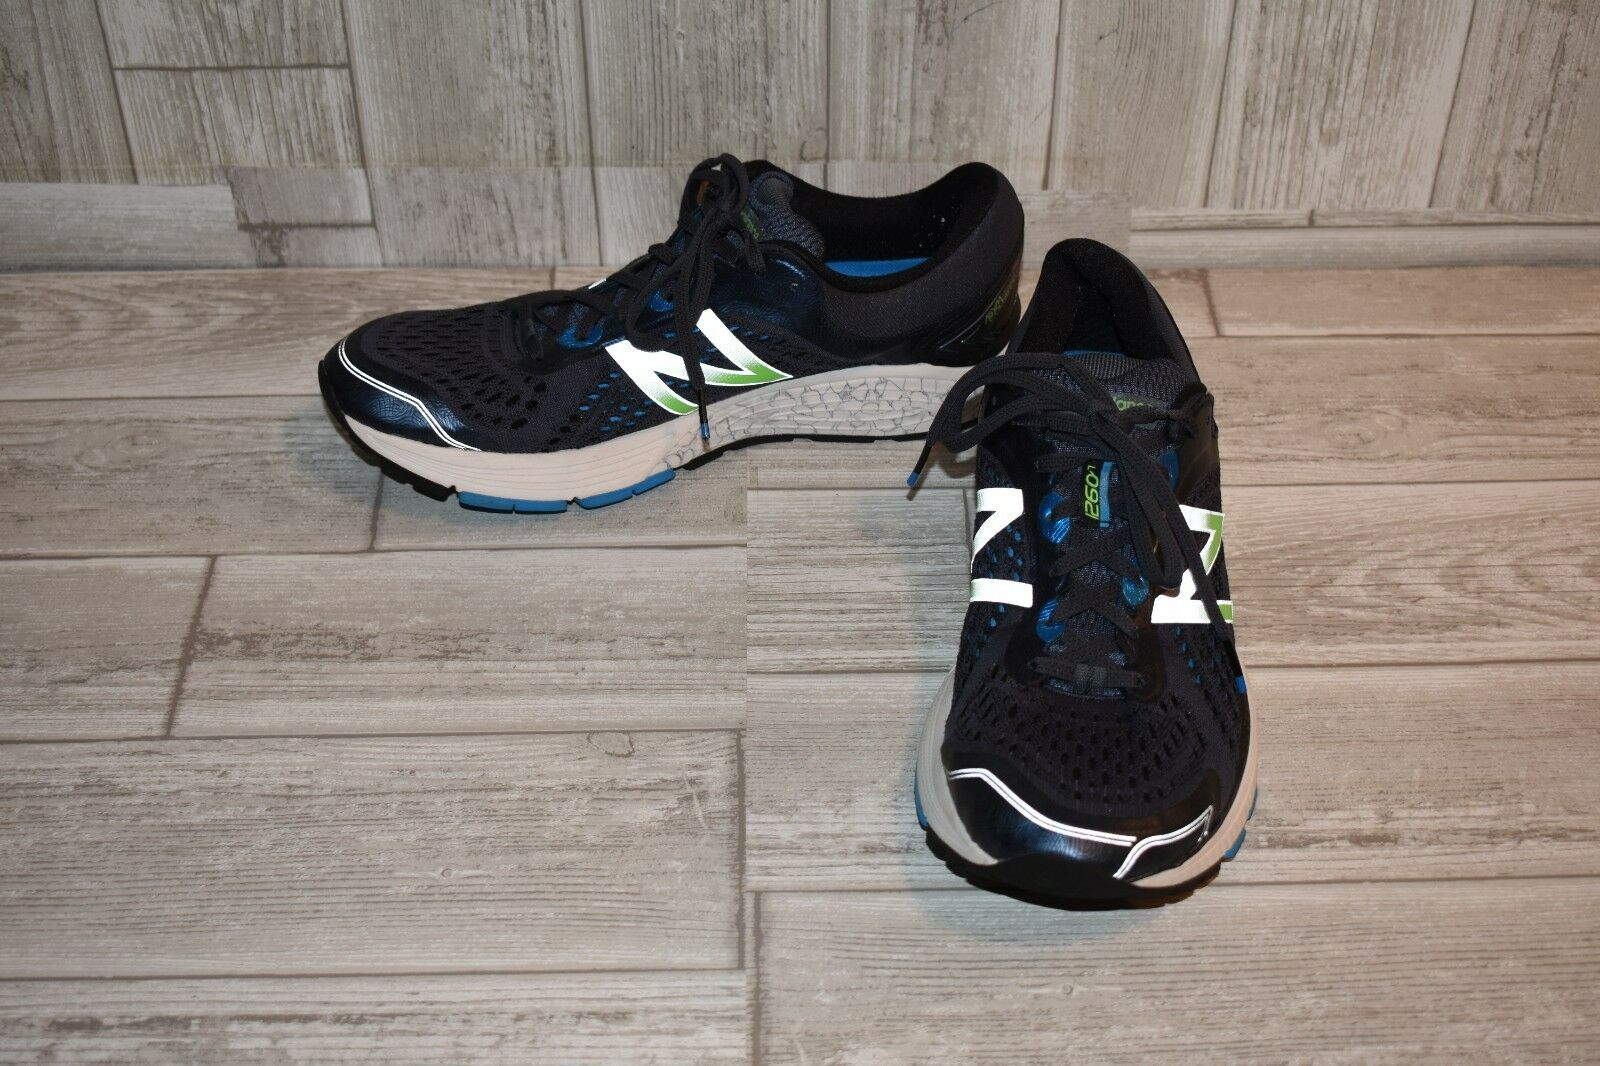 New Balance Stability 1260v7 Running shoes, Men's Size 10D, Navy bluee Lime